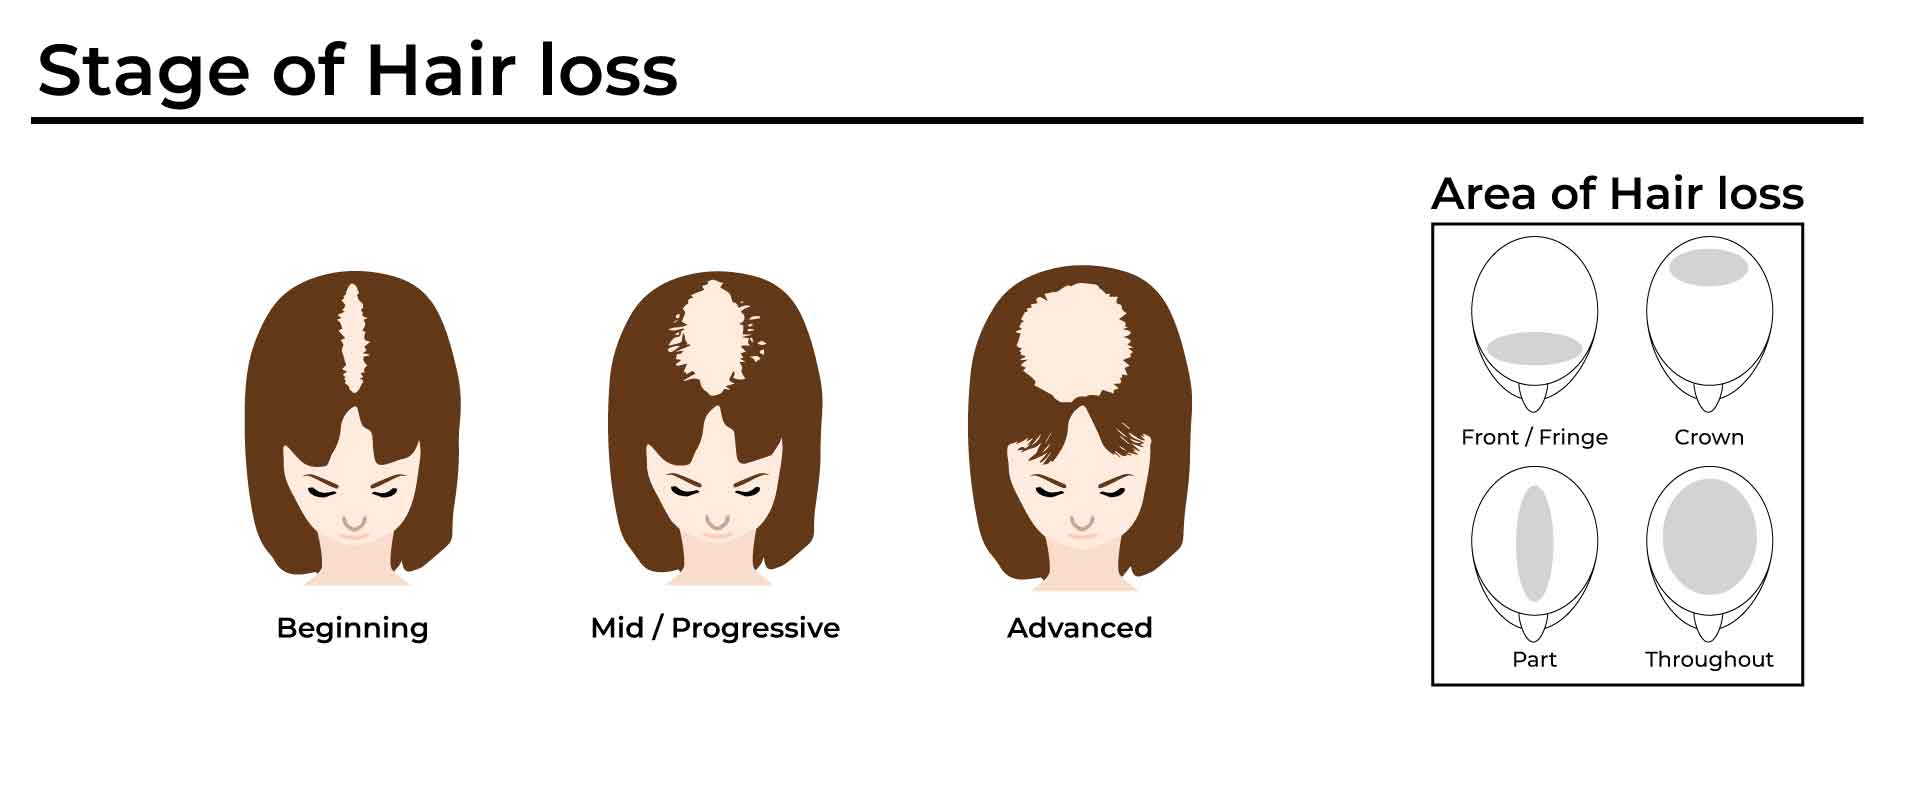 advanced stage of hair loss